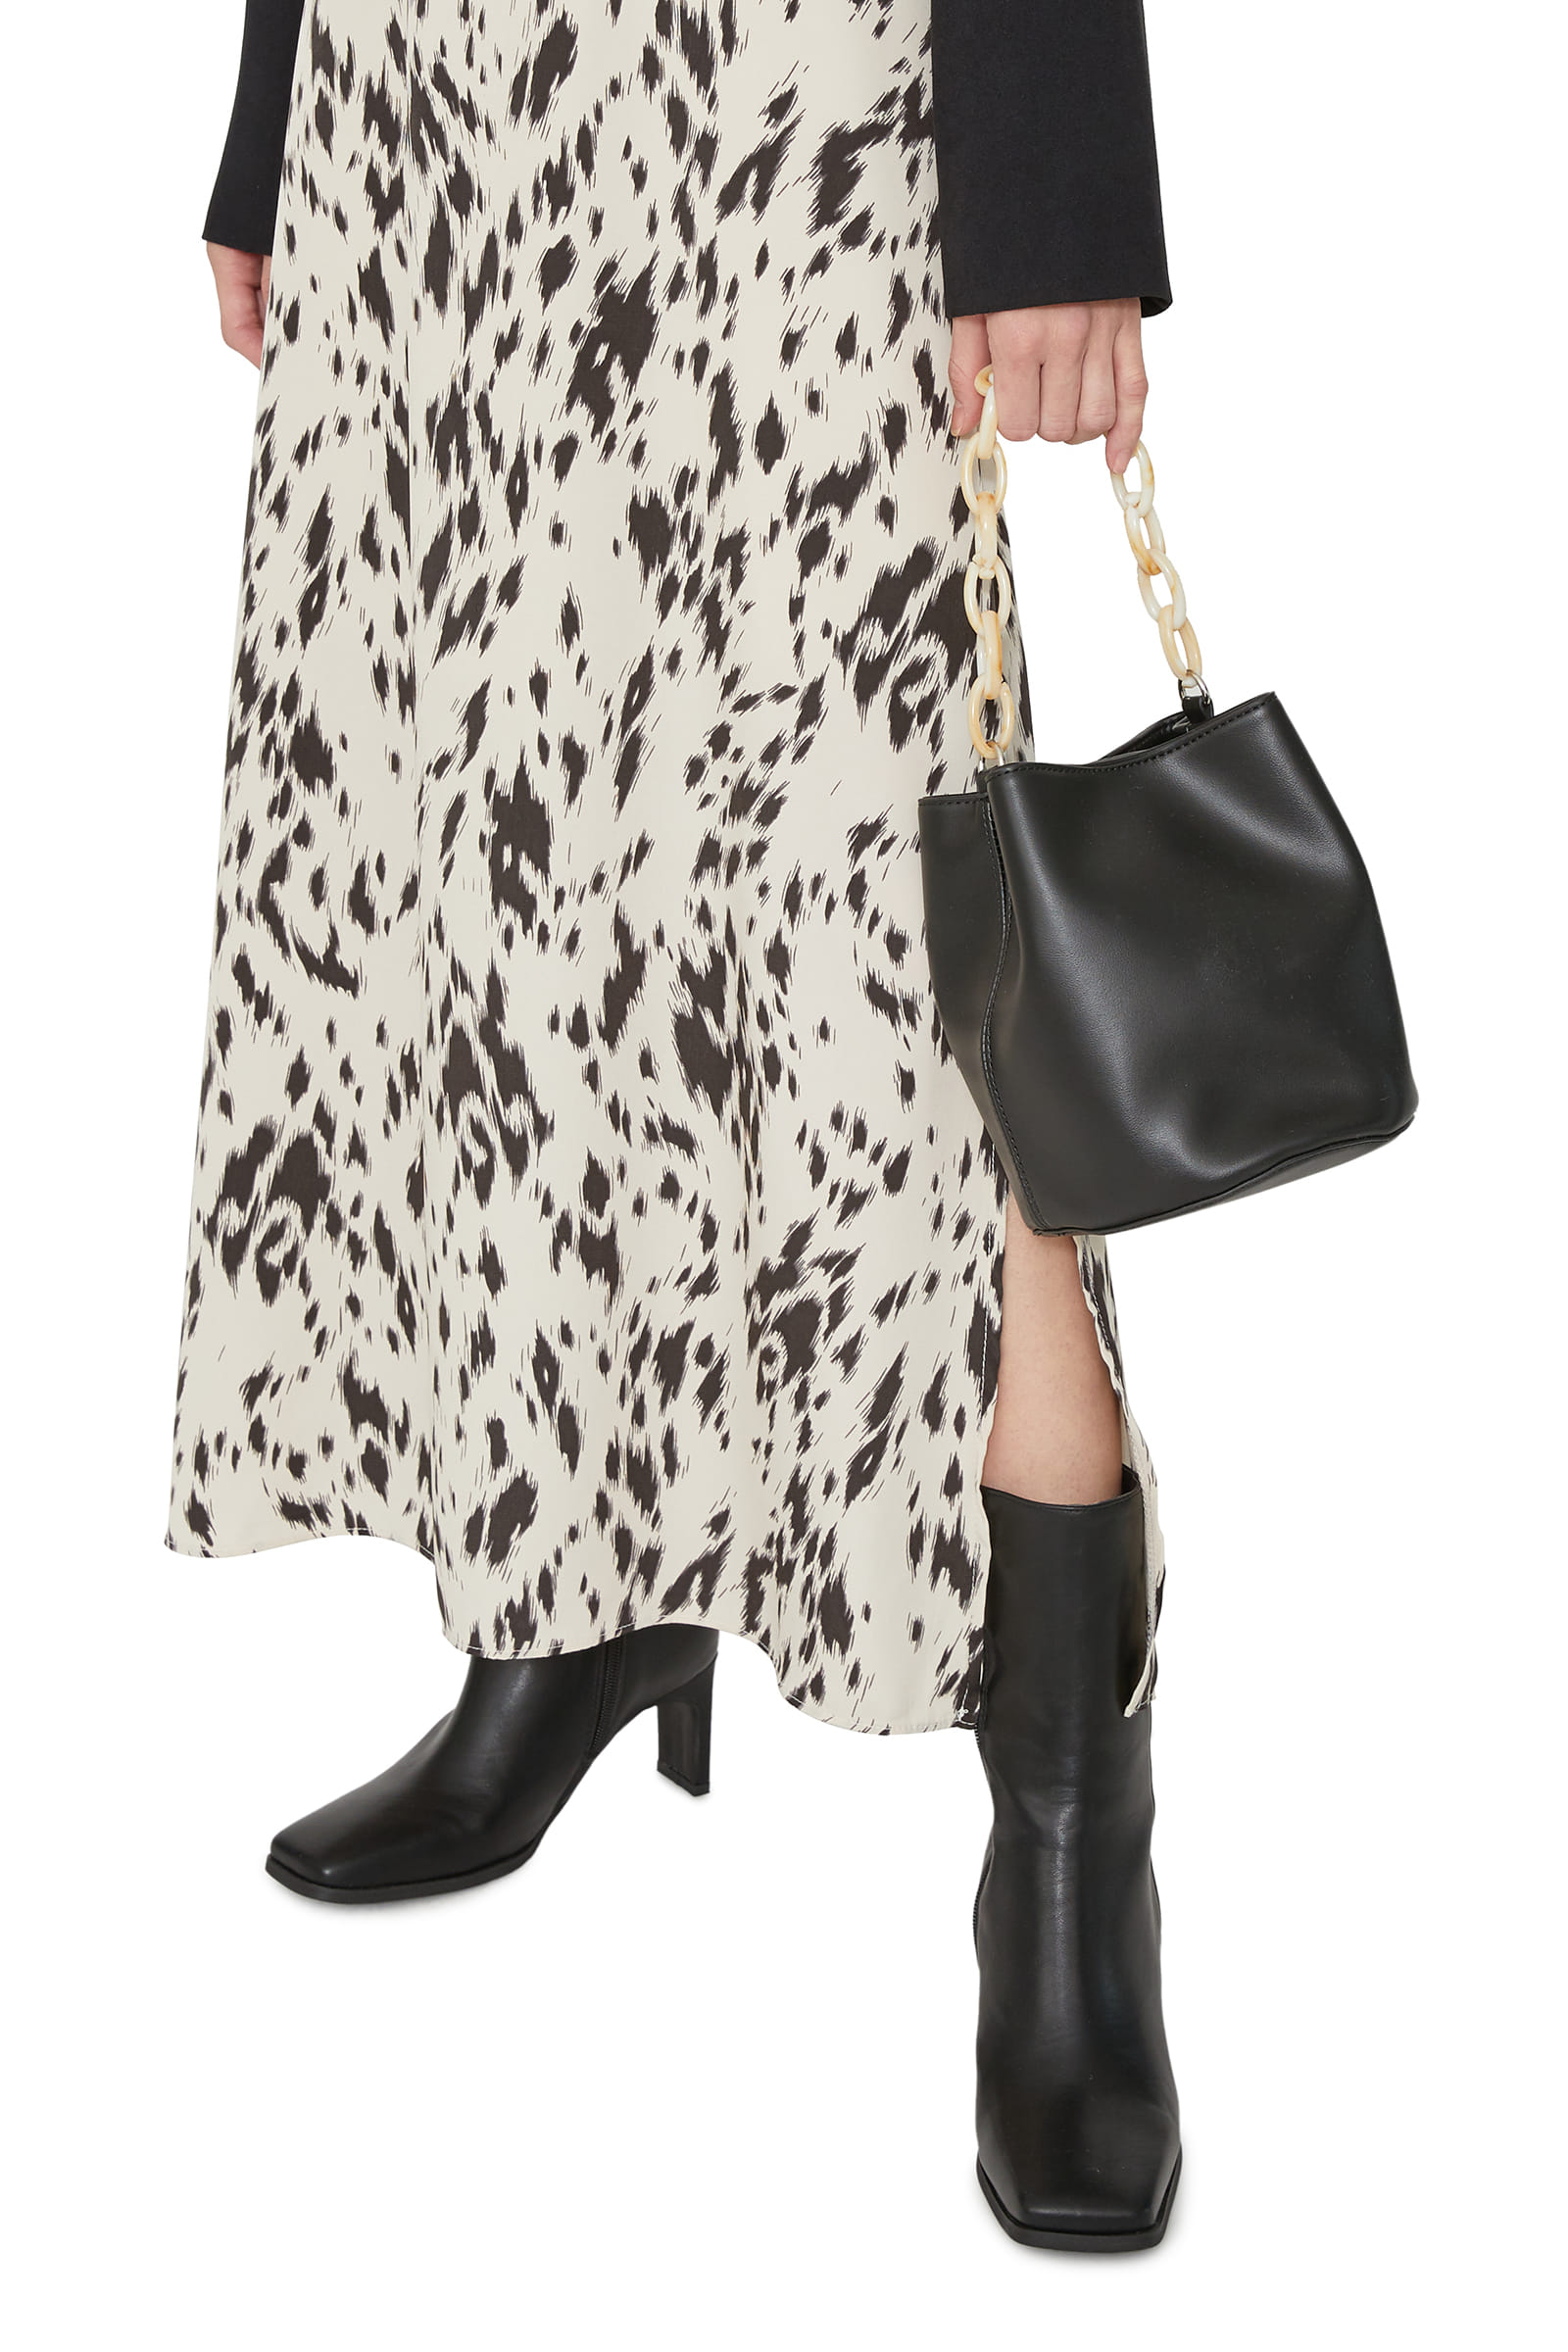 Five high heel ankle boots